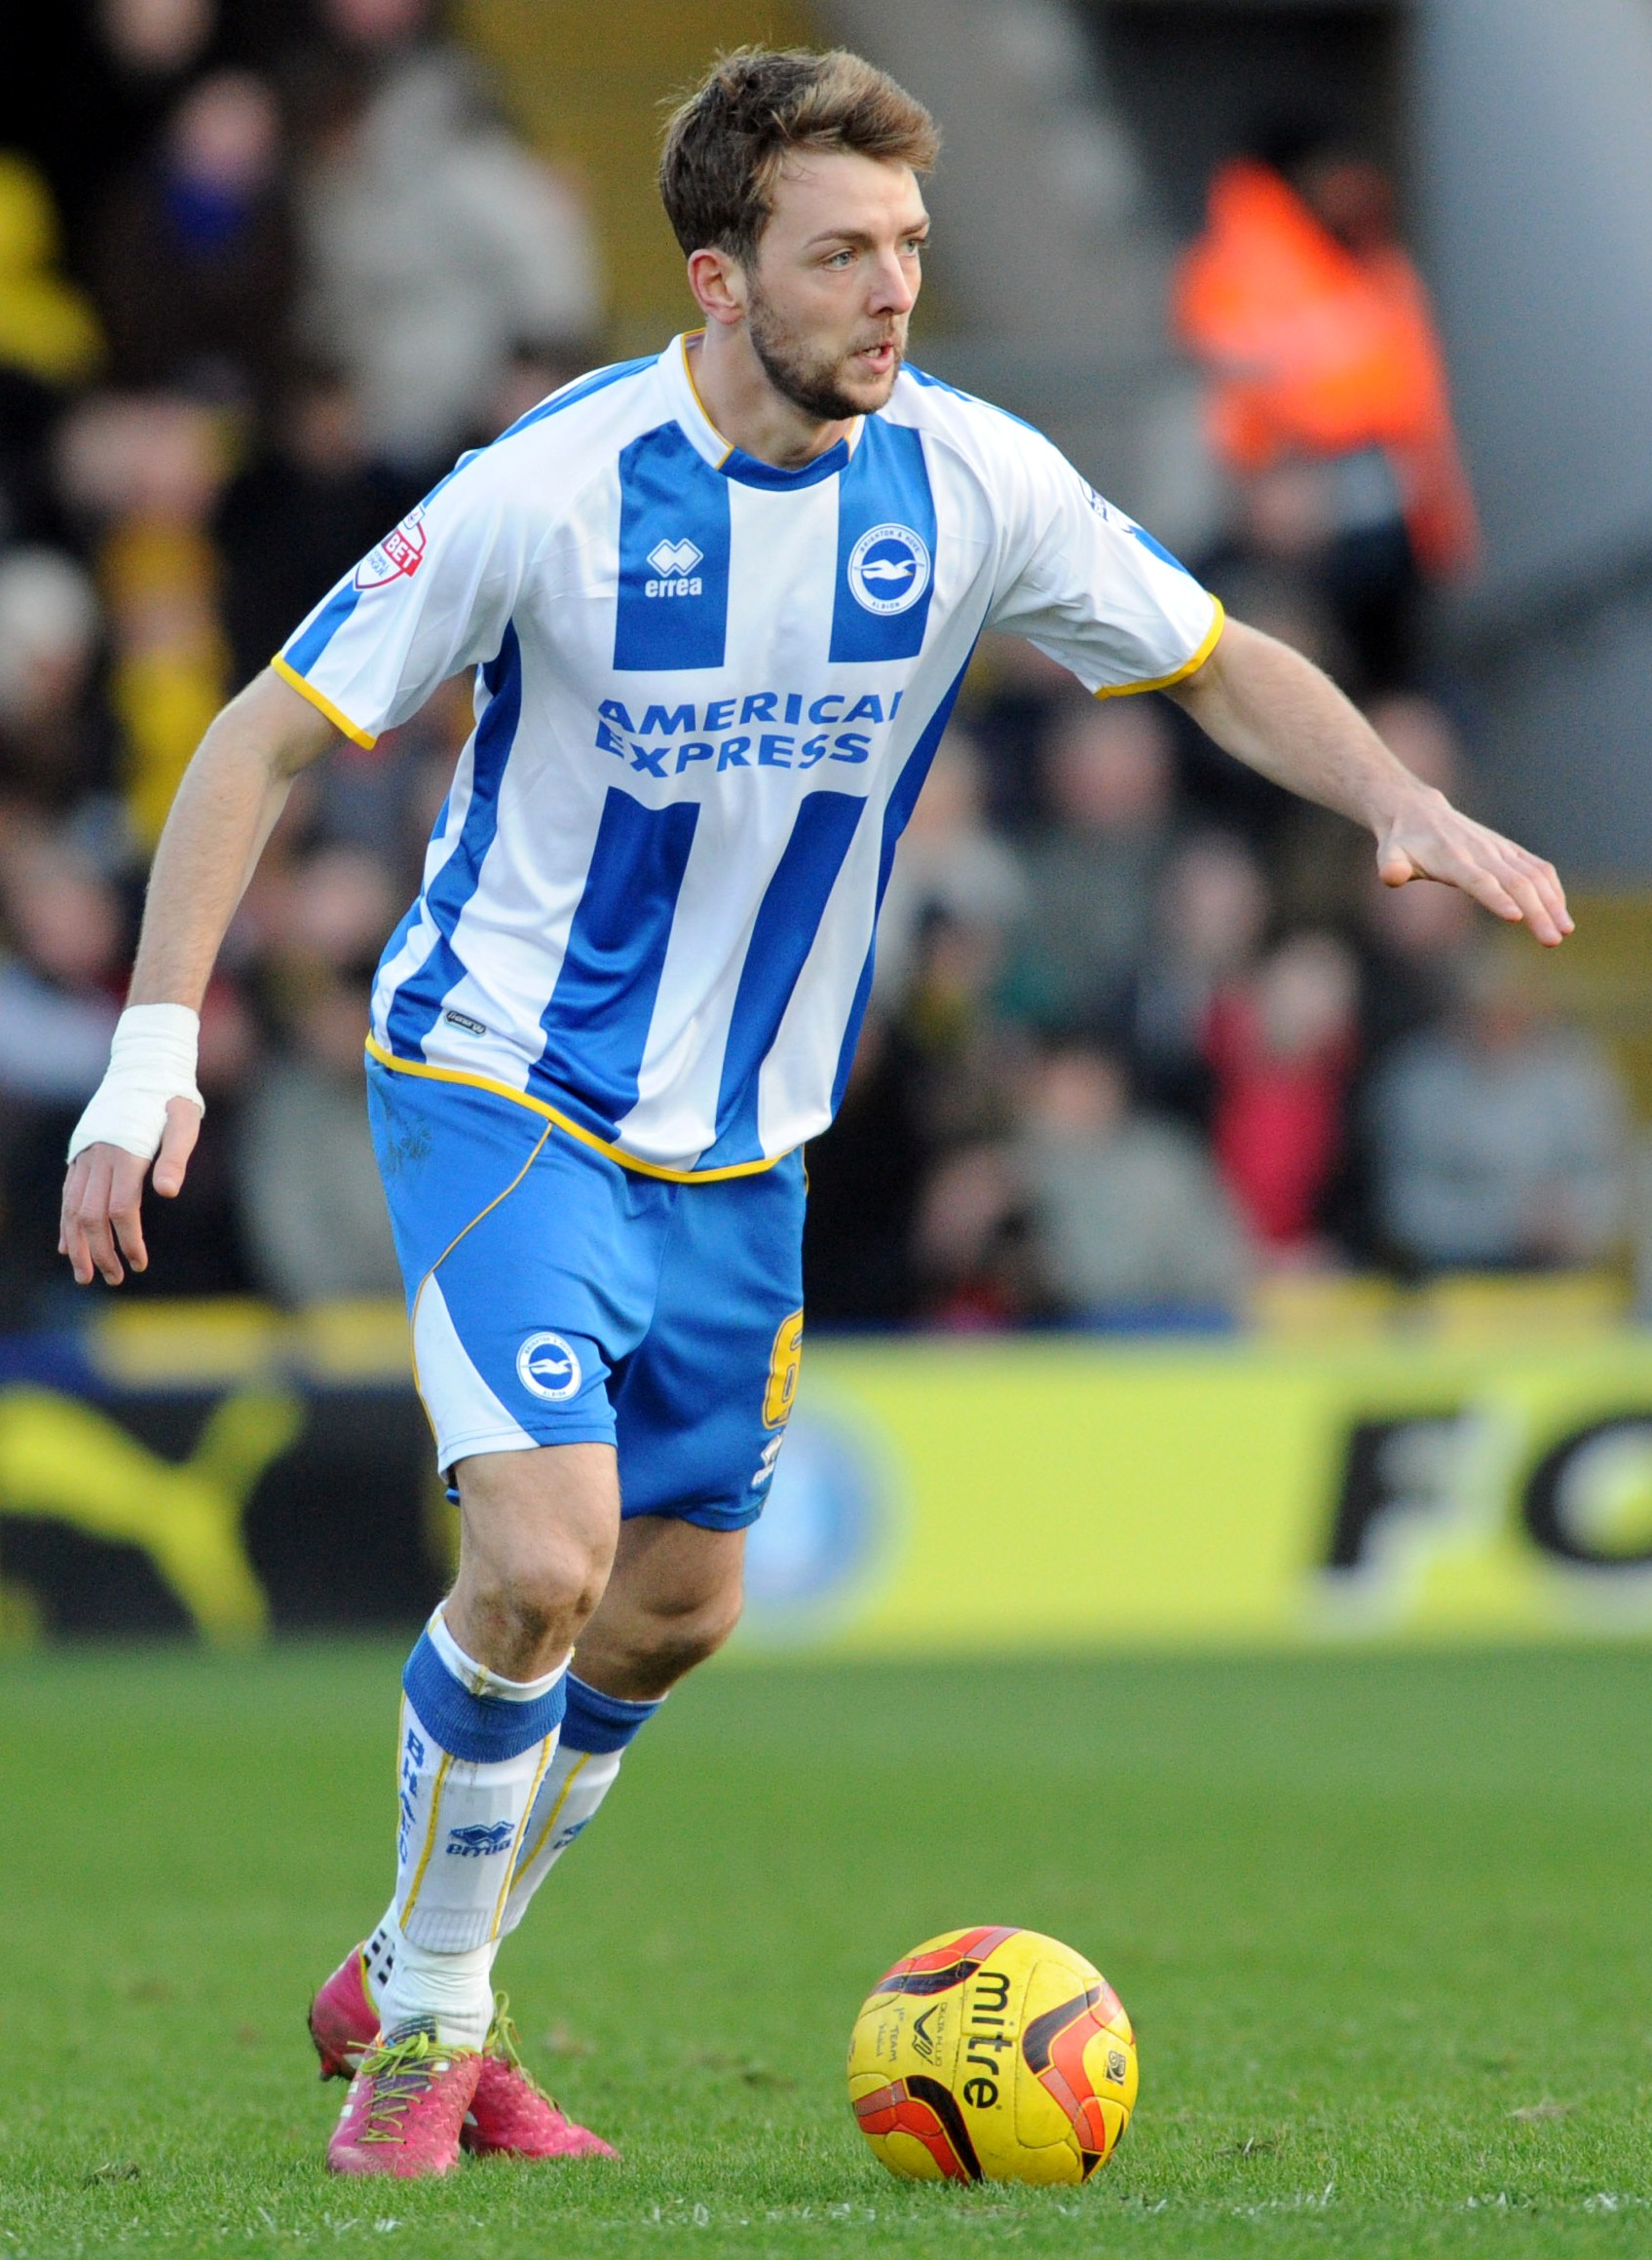 Dale Stephens is unwell and misses the Sheffield Wednesday match